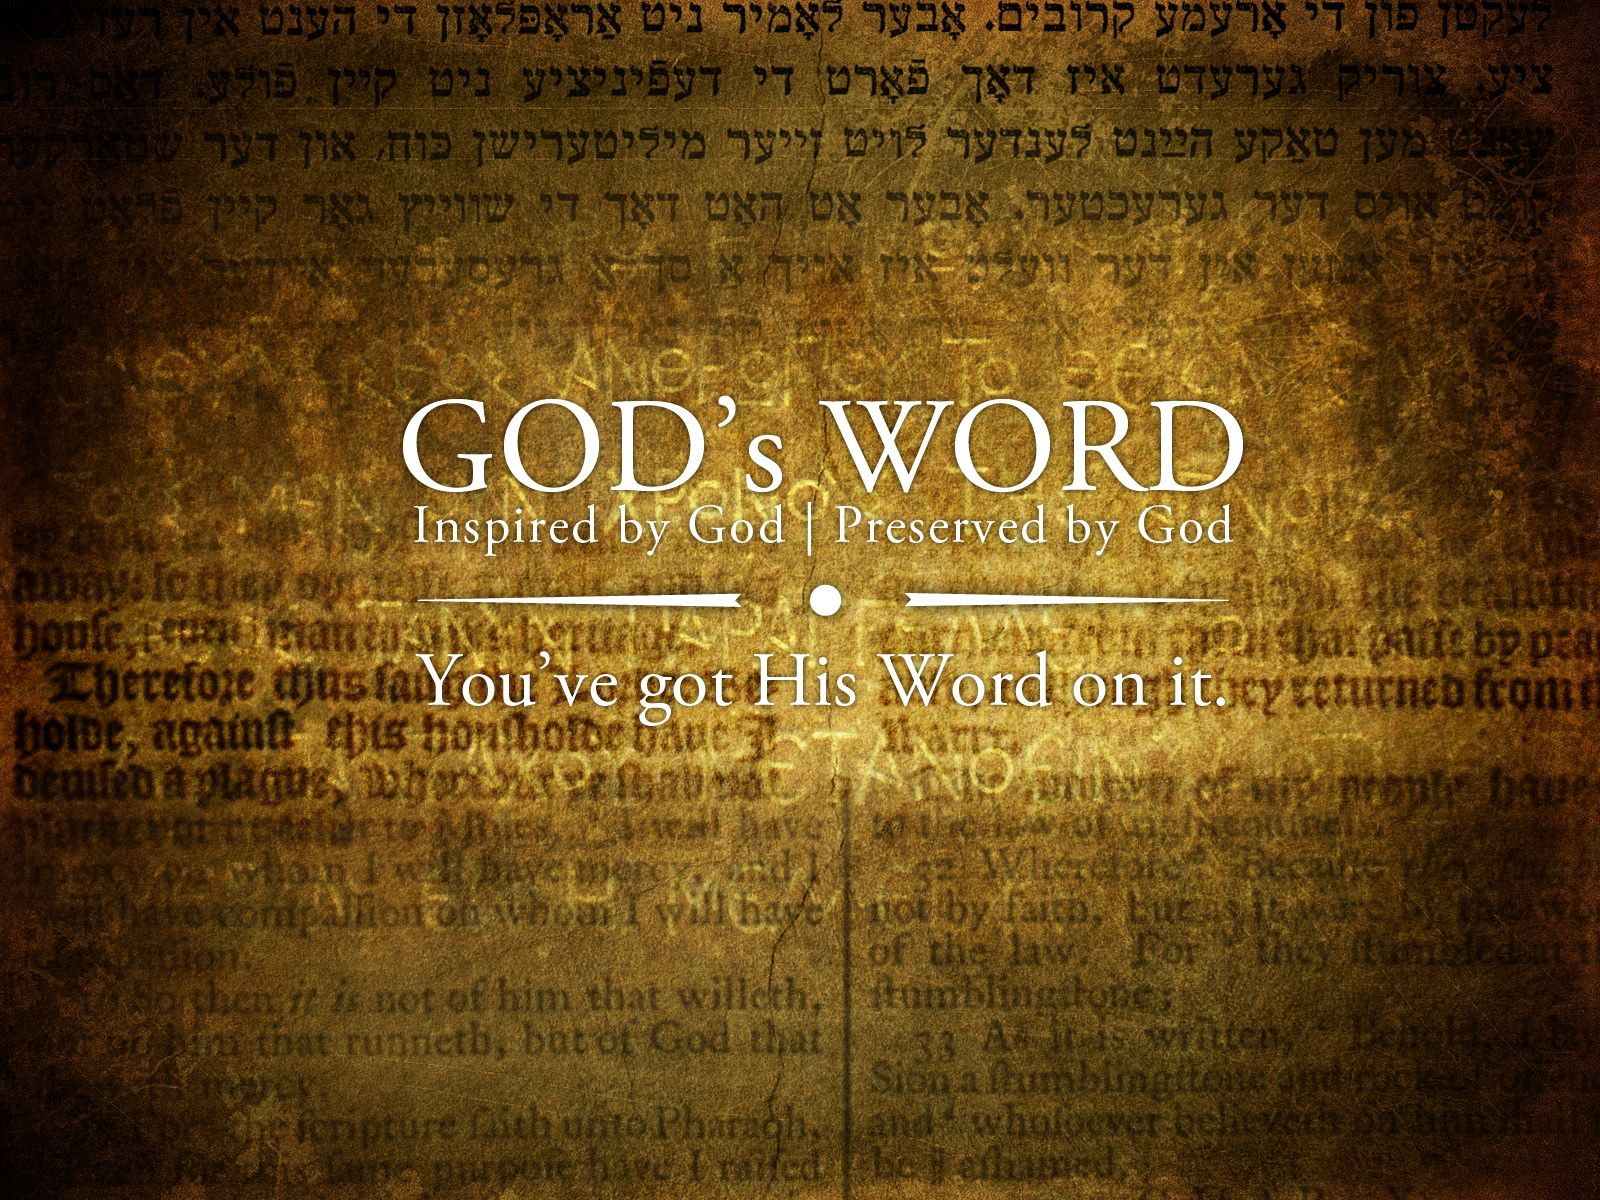 gods word desktop wallpaper 1600a—1200 christian desktop wps pinterest bible